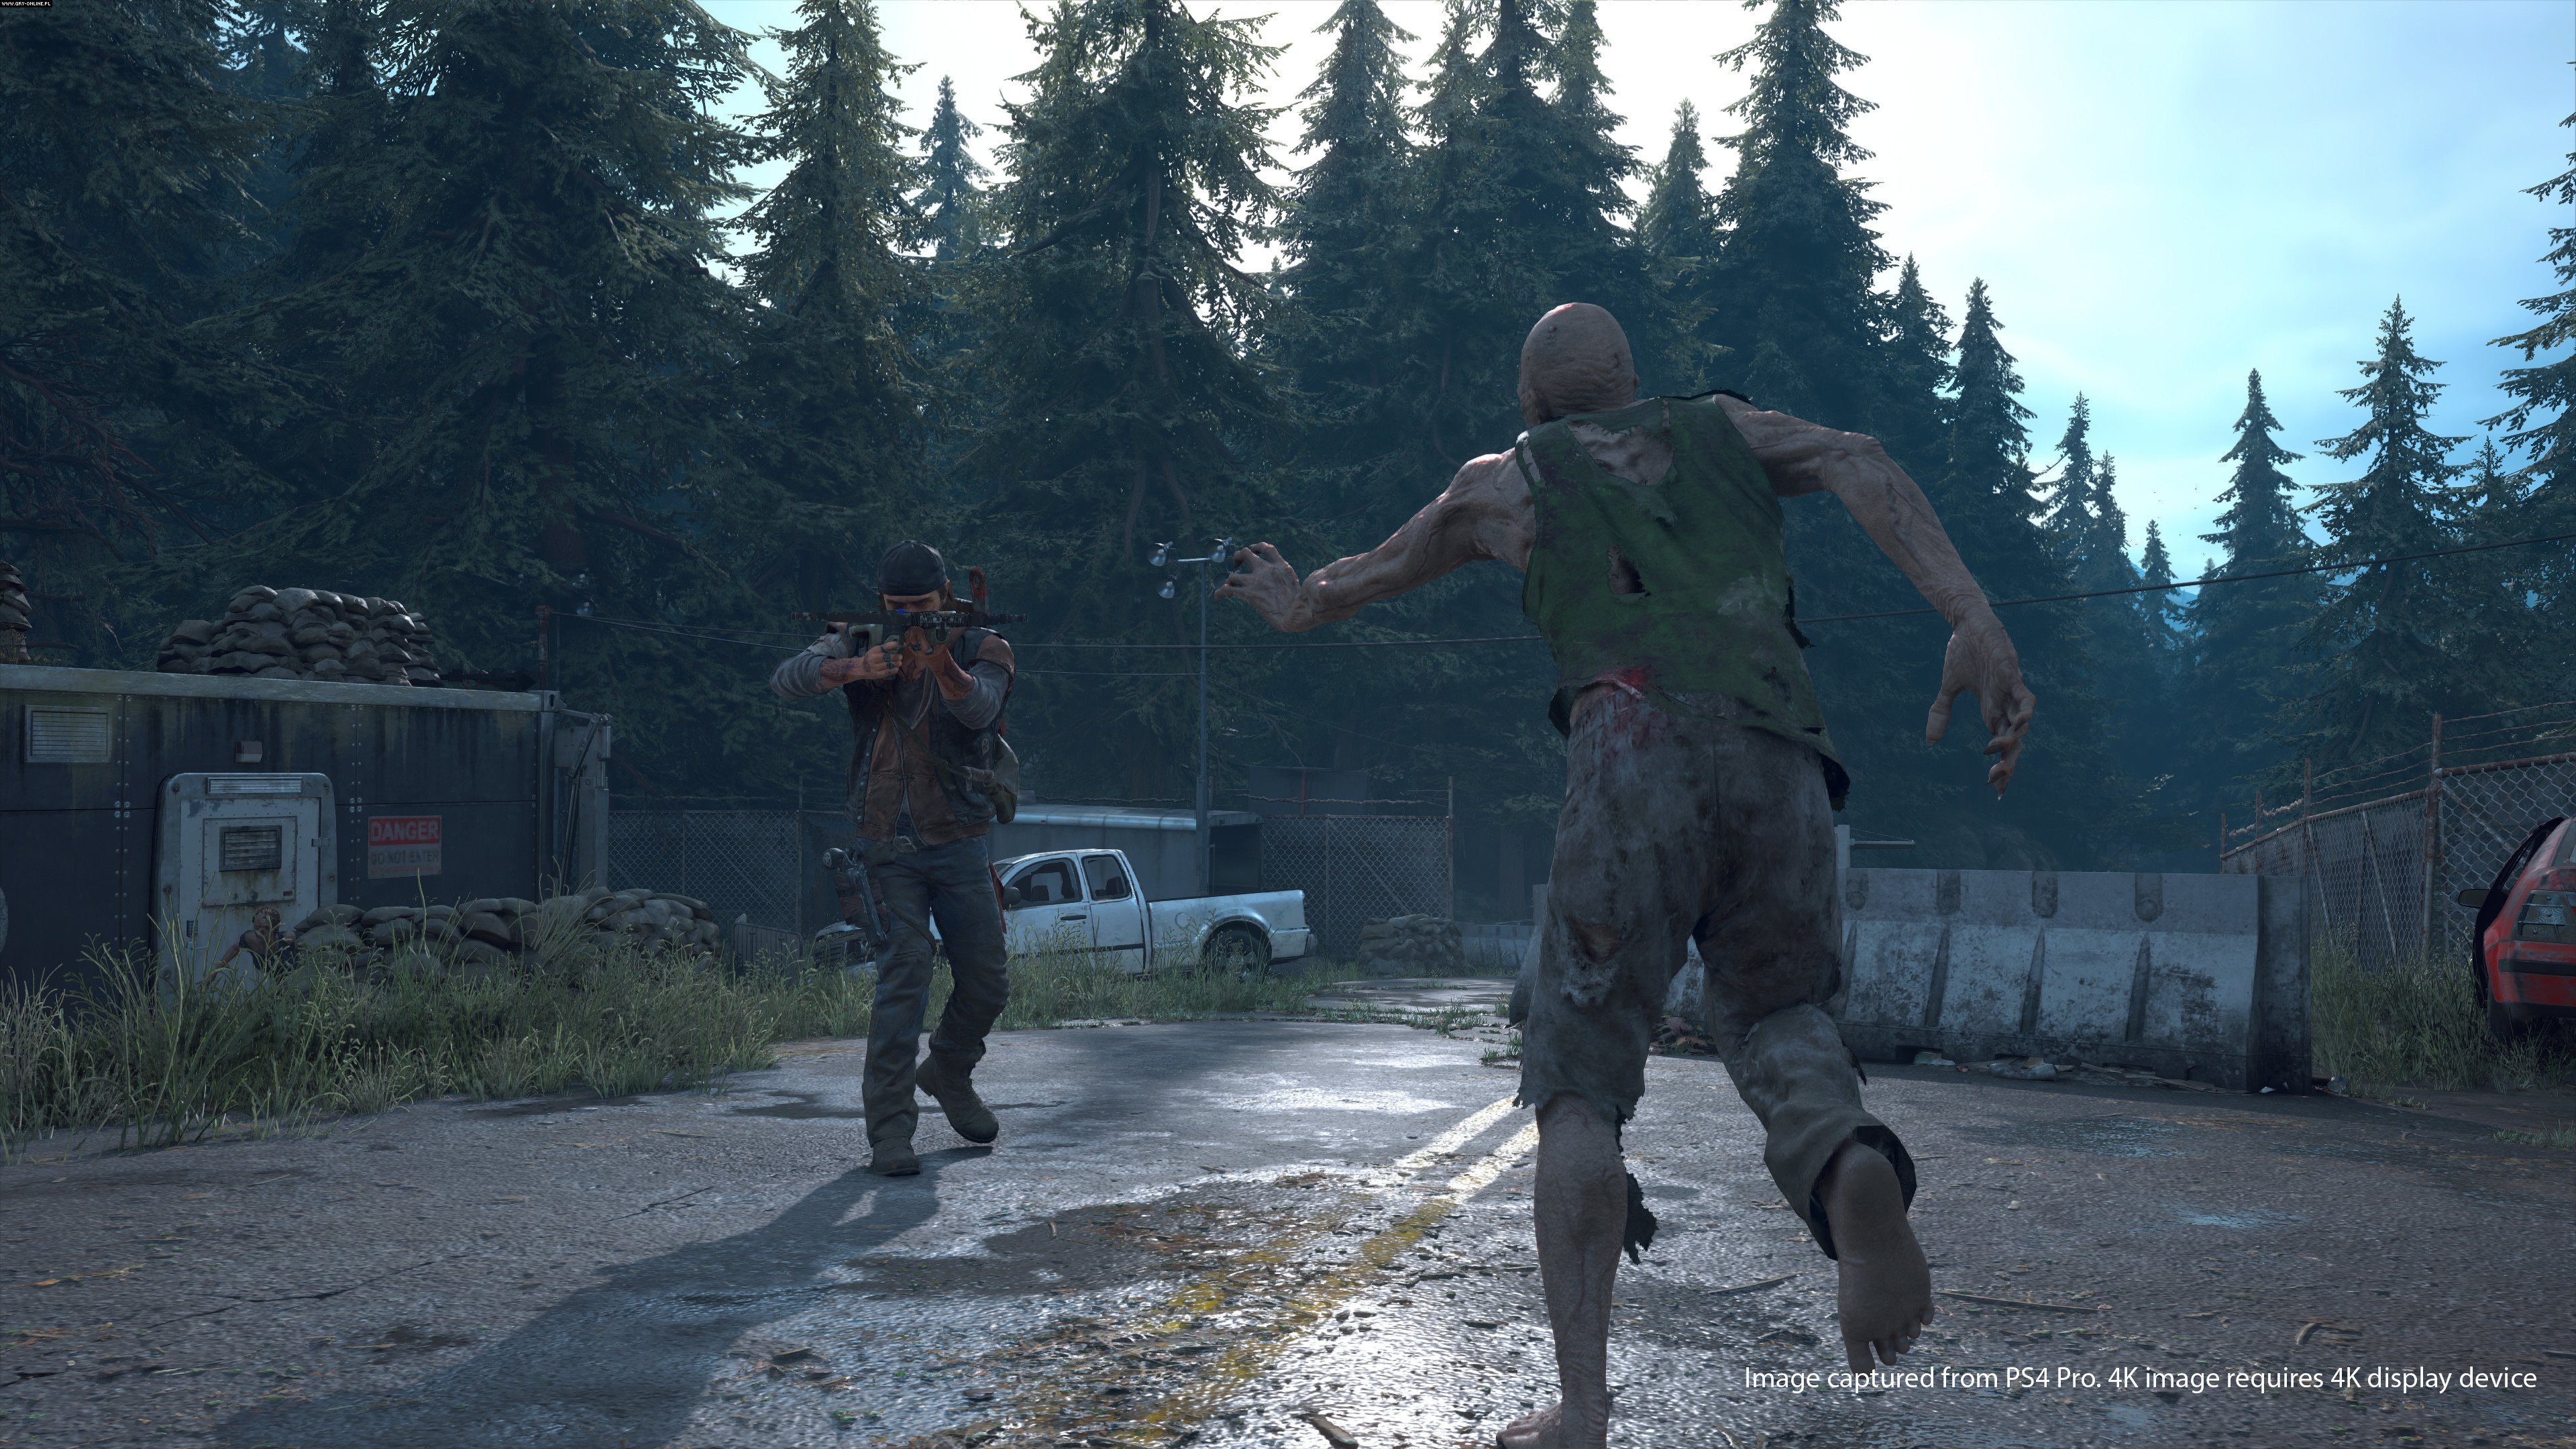 Days Gone PS4 Games Image 46/67, Bend Studio, Sony Interactive Entertainment